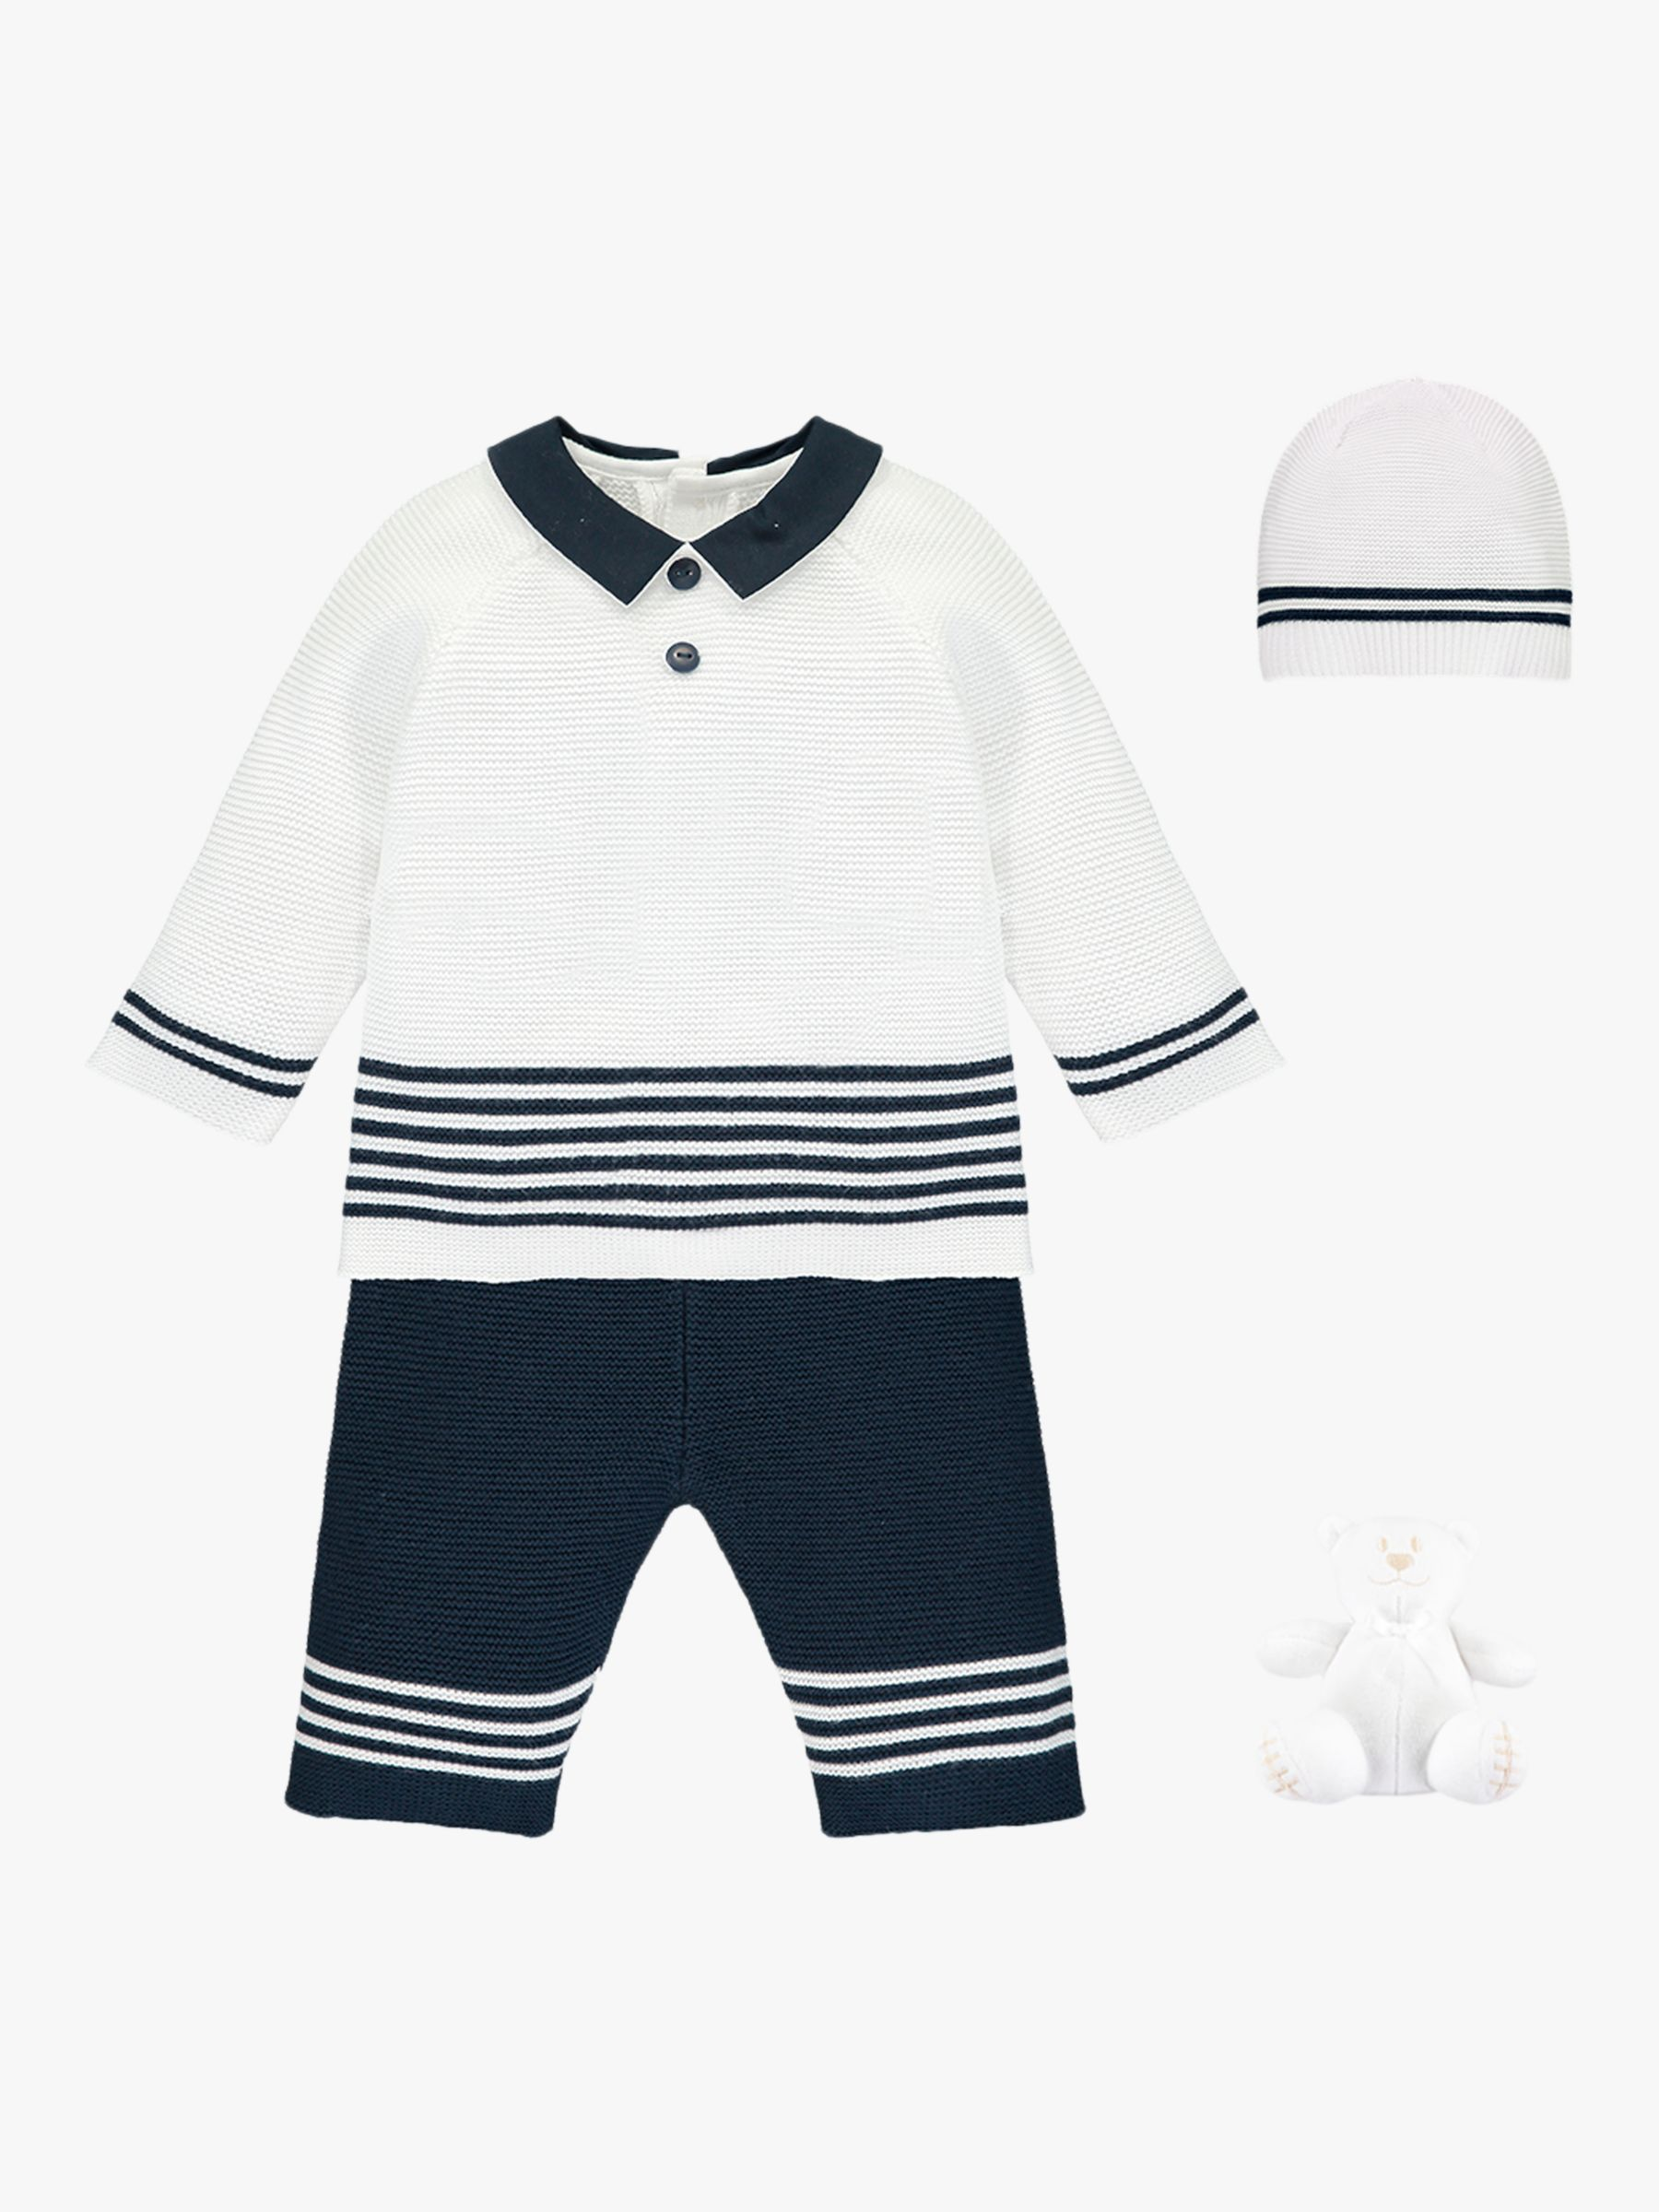 Emile et Rose Emile et Rose Silas Knit Jumper, Trousers, Hat and Teddy Bear Set, Navy/White